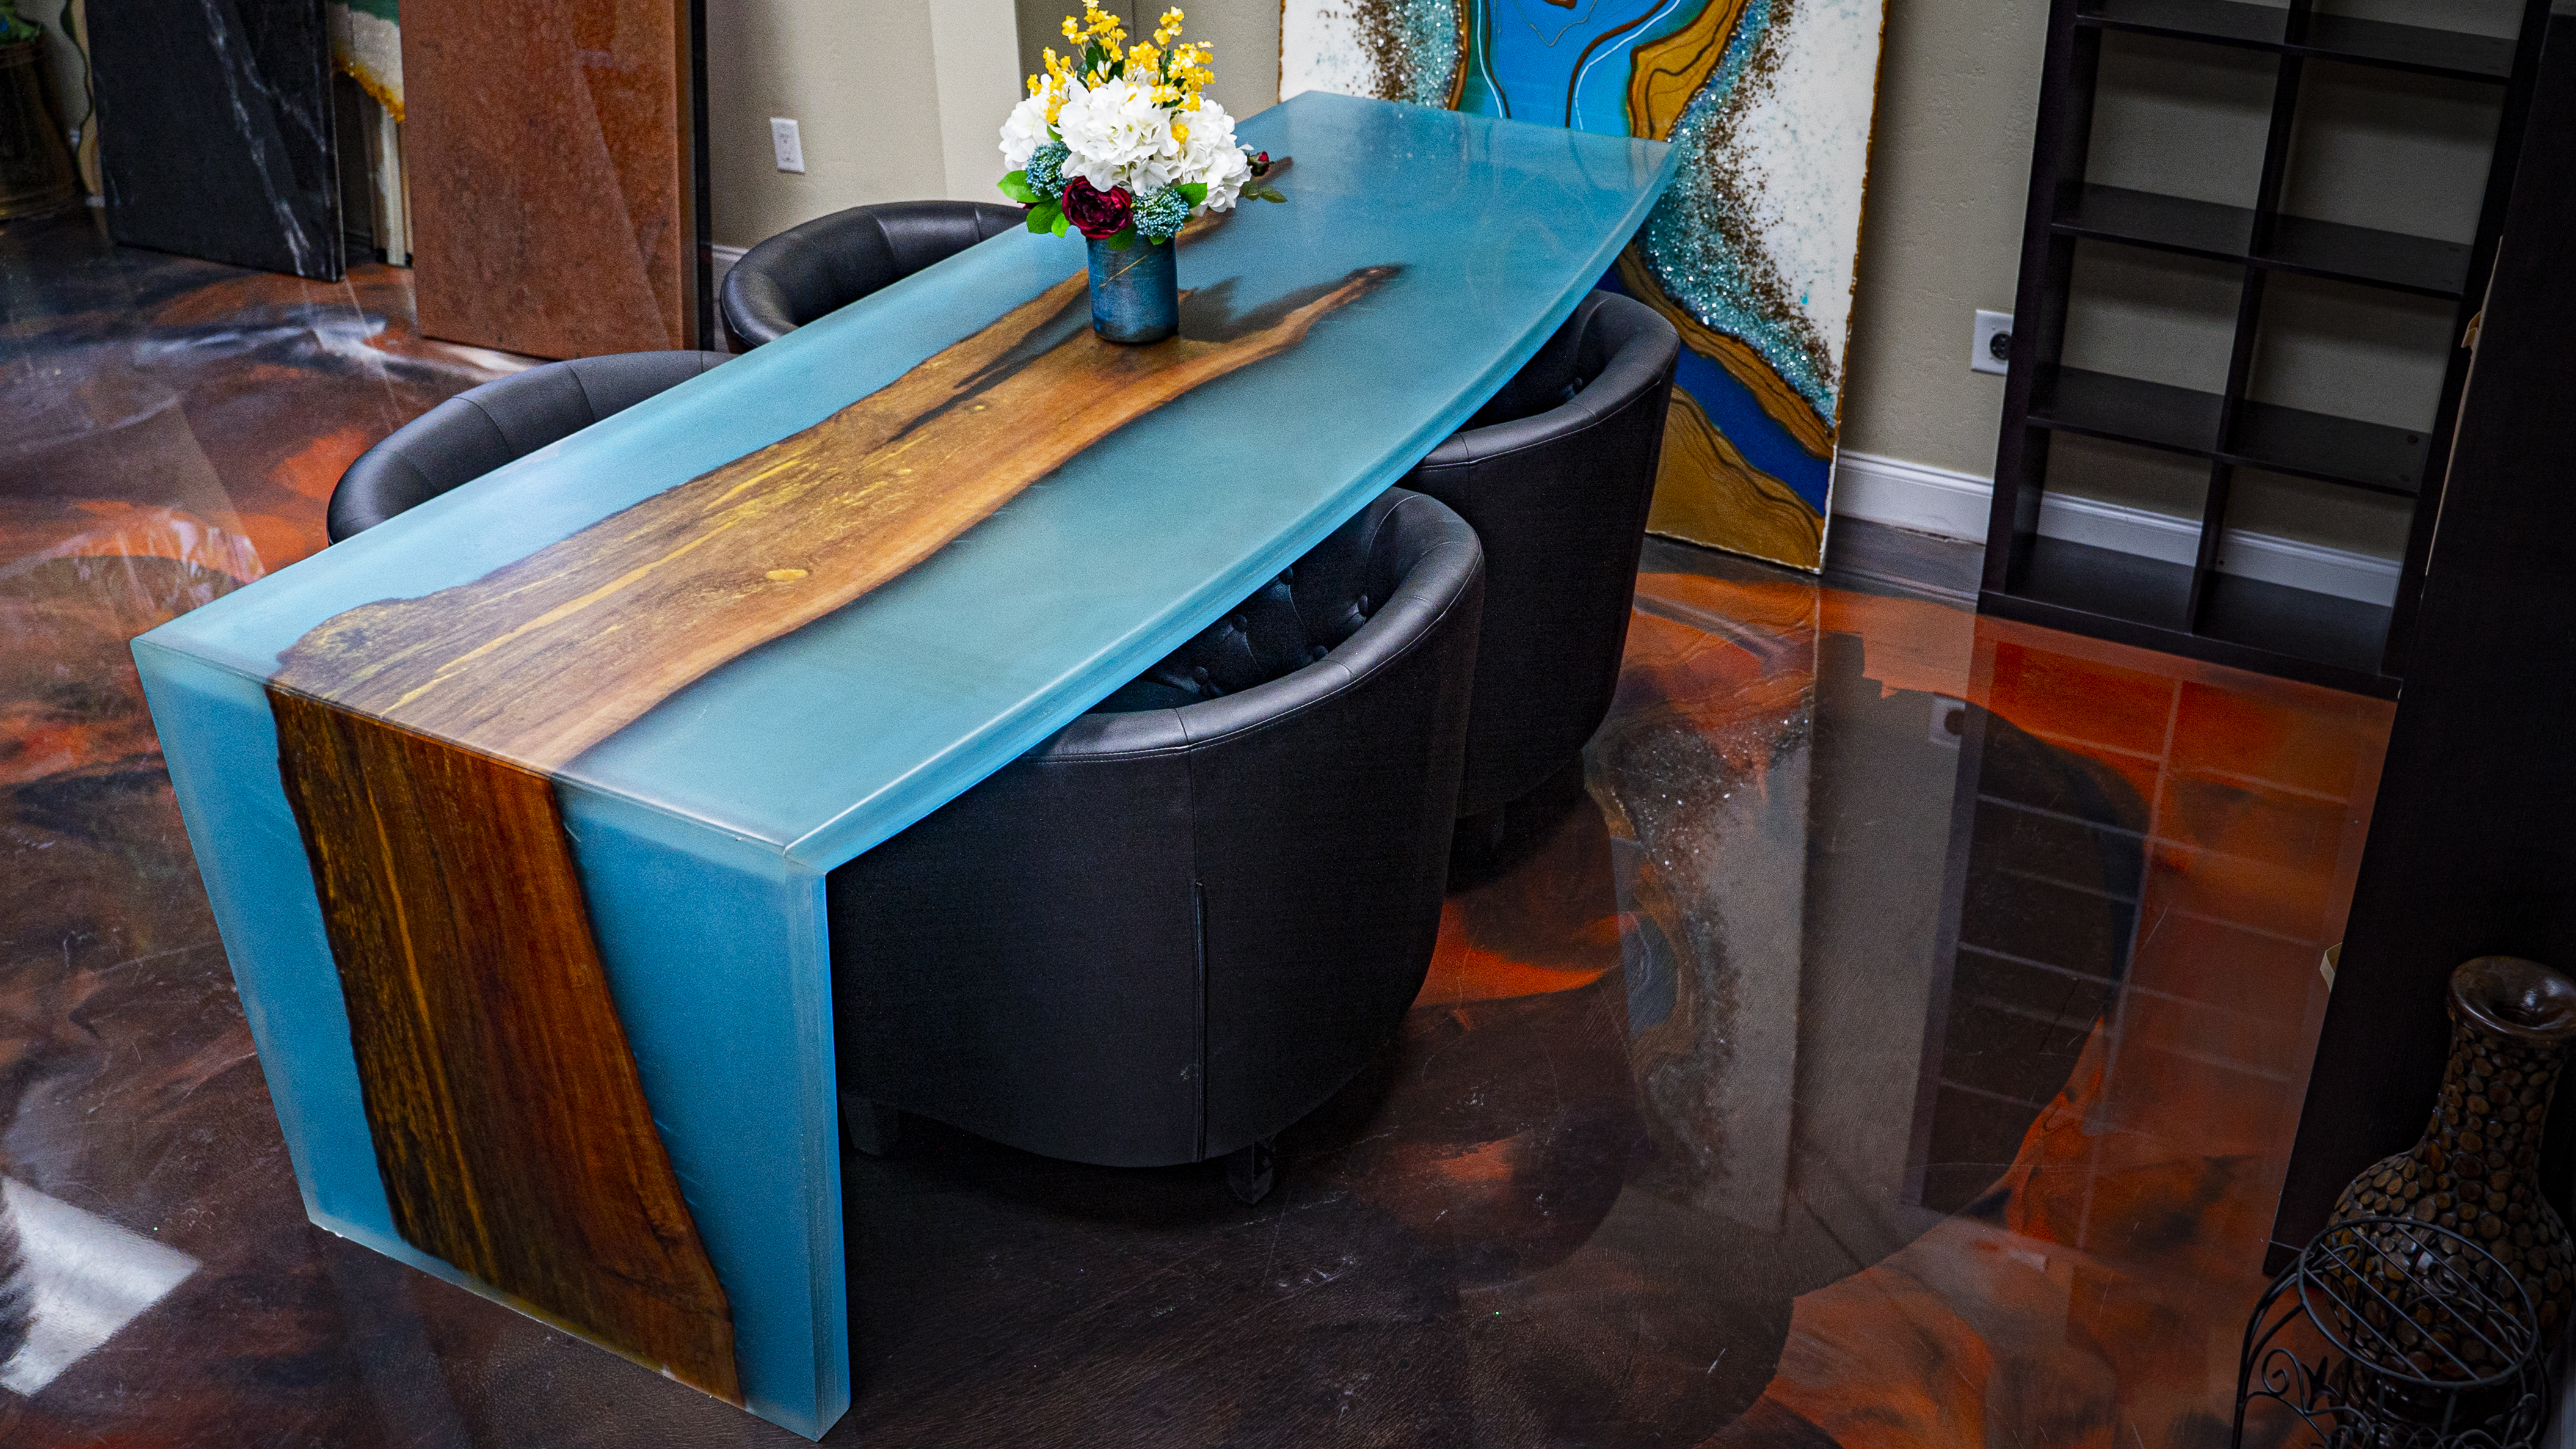 waterfall-epoxy-table-with-wood.jpg